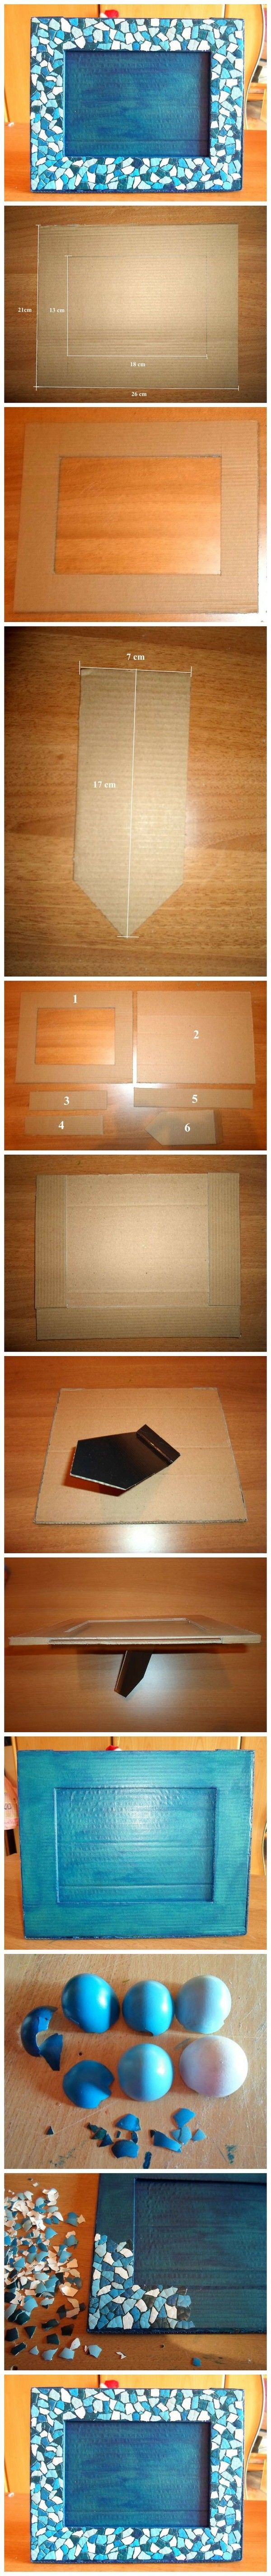 Corrugated production photo frame oh very nice, decorated with broken egg shell!  Cardboard photo frame .. step by step carefully to make all sorts of surprises :) #PhotoFrame